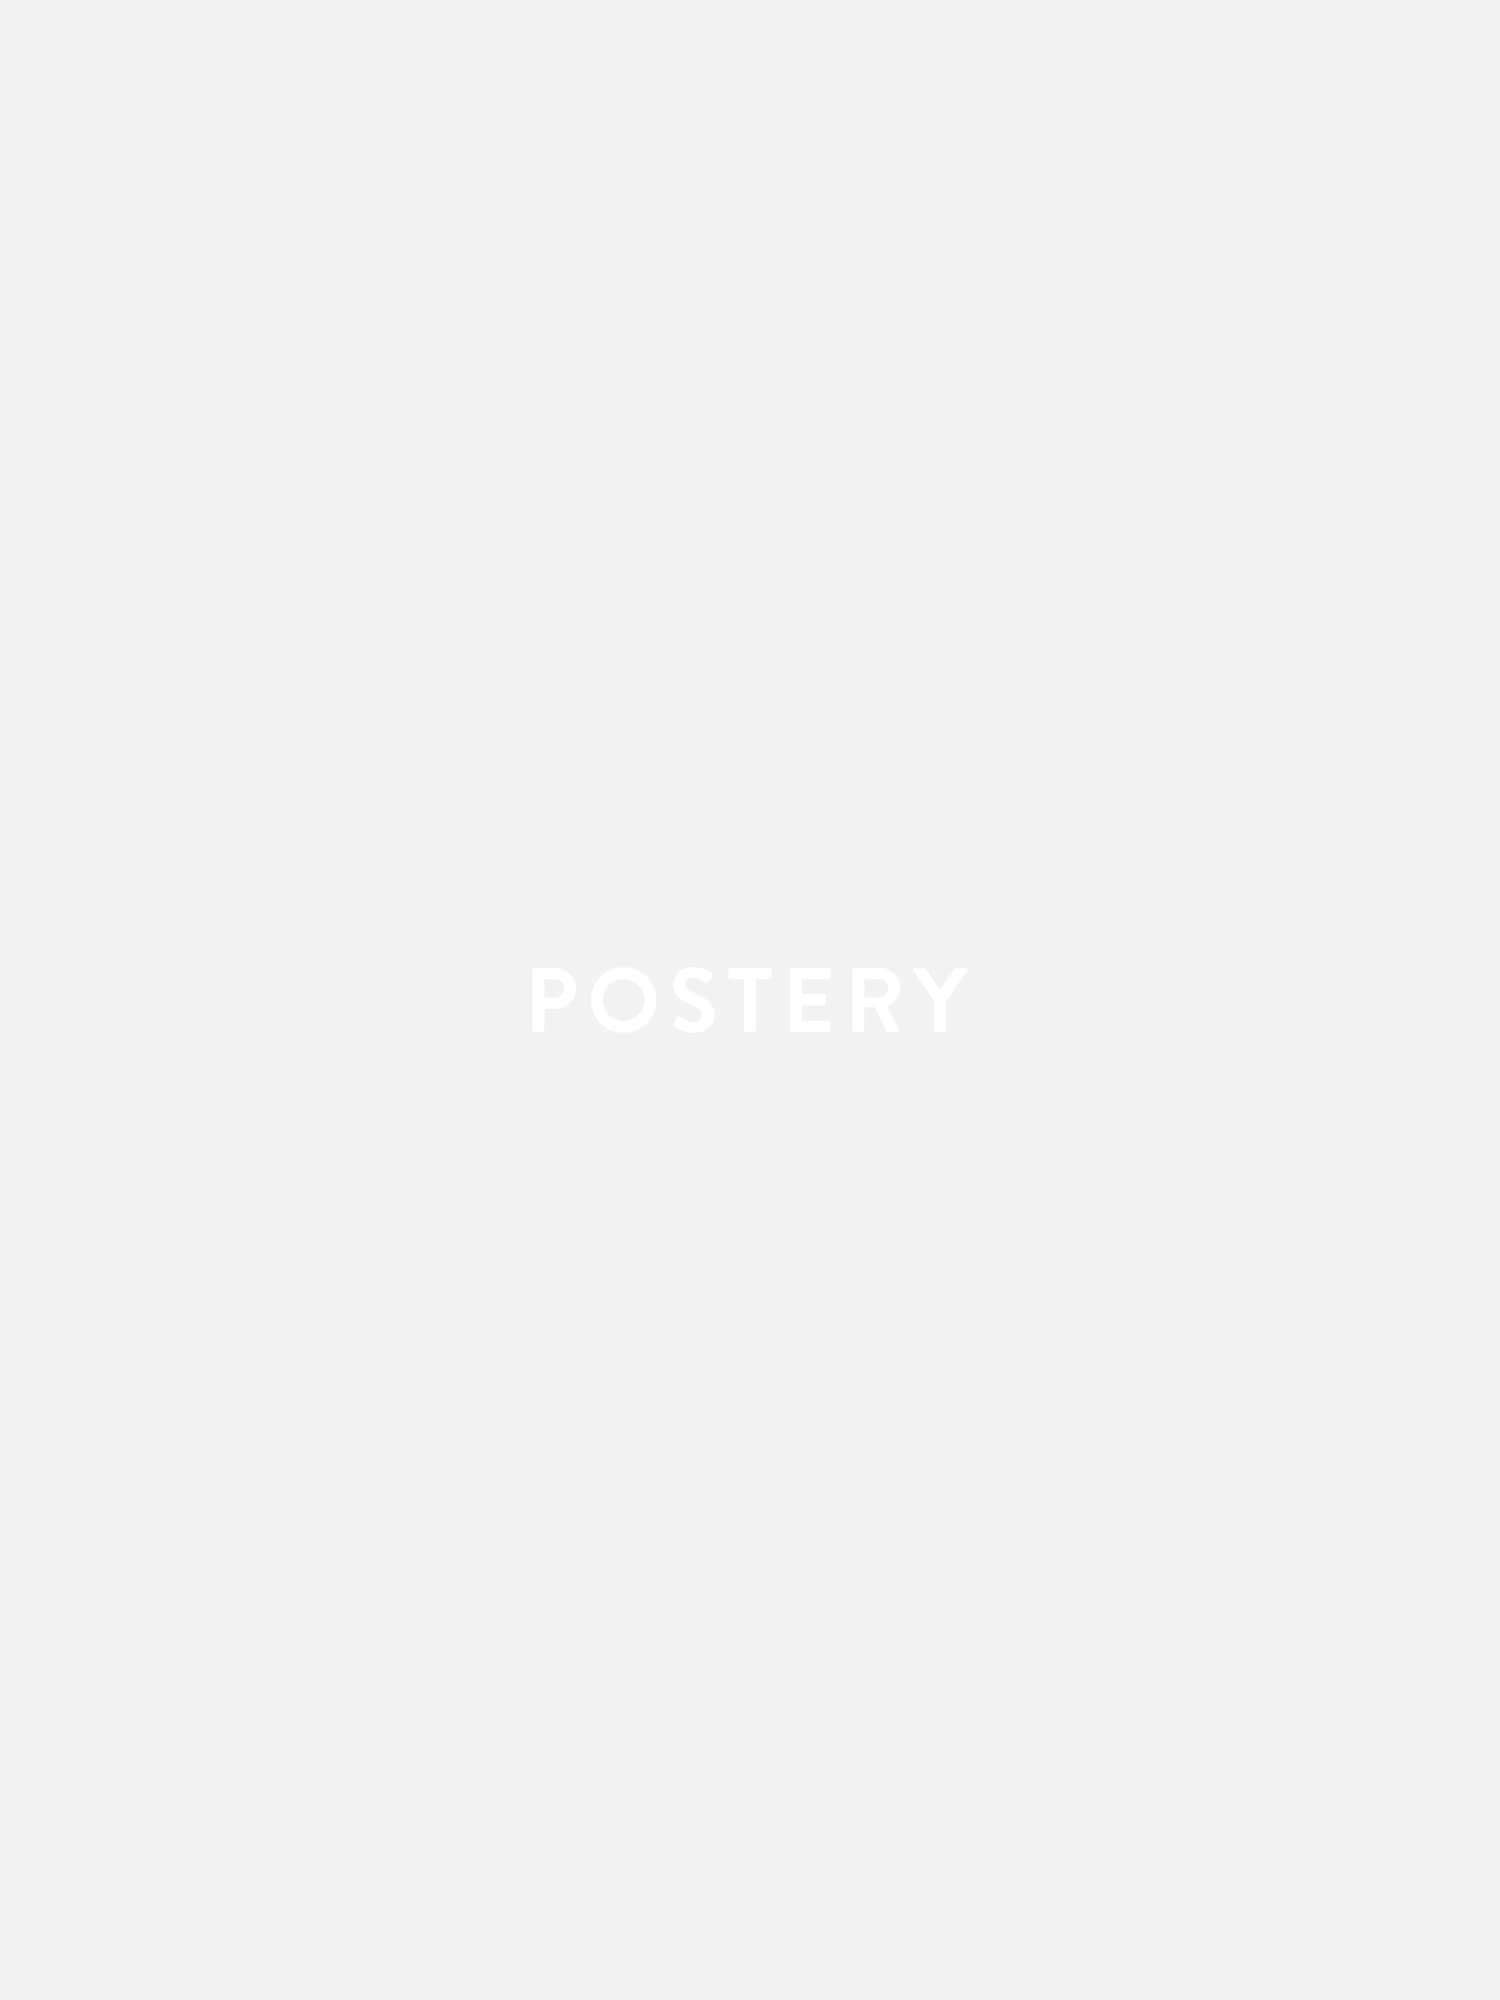 Cactus Close-Up no.2 Poster